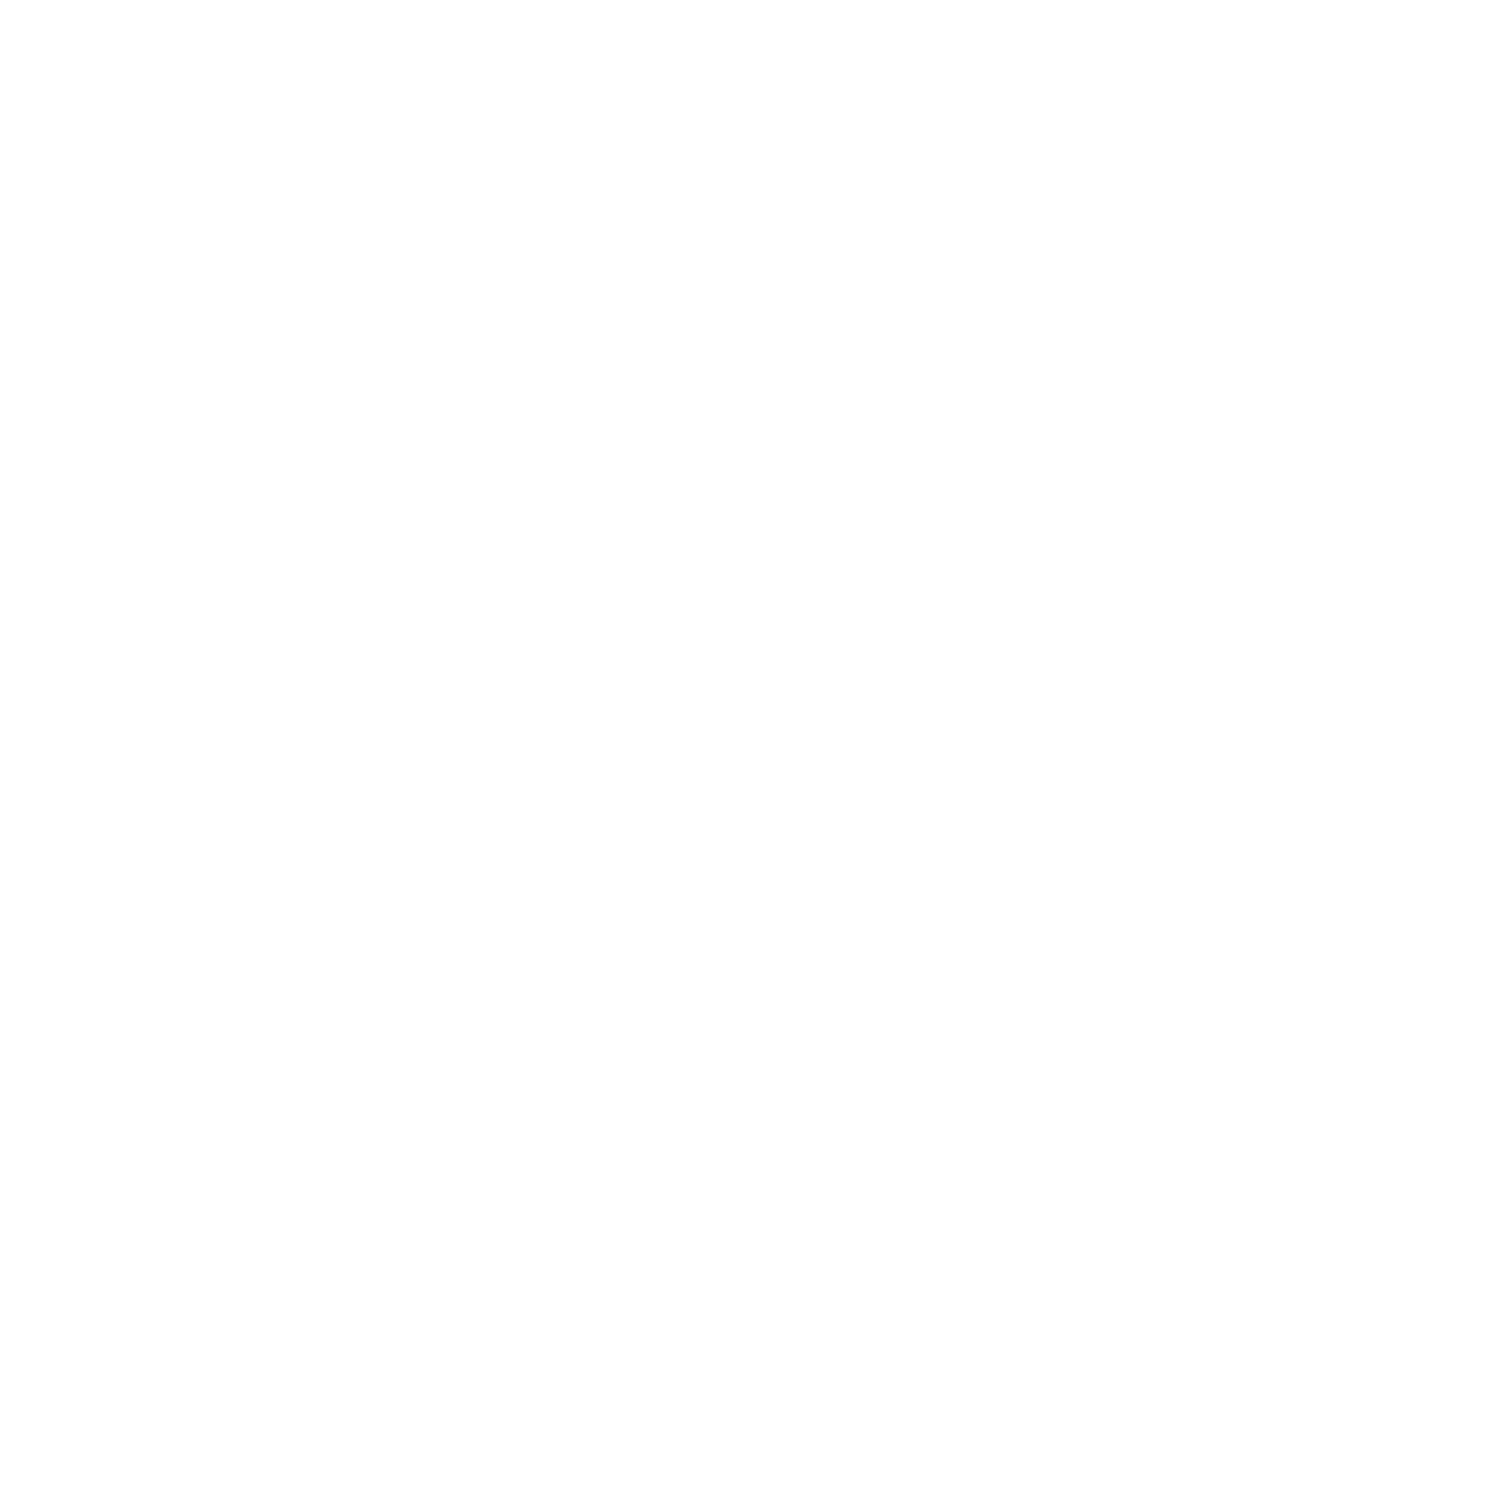 D&S Catering